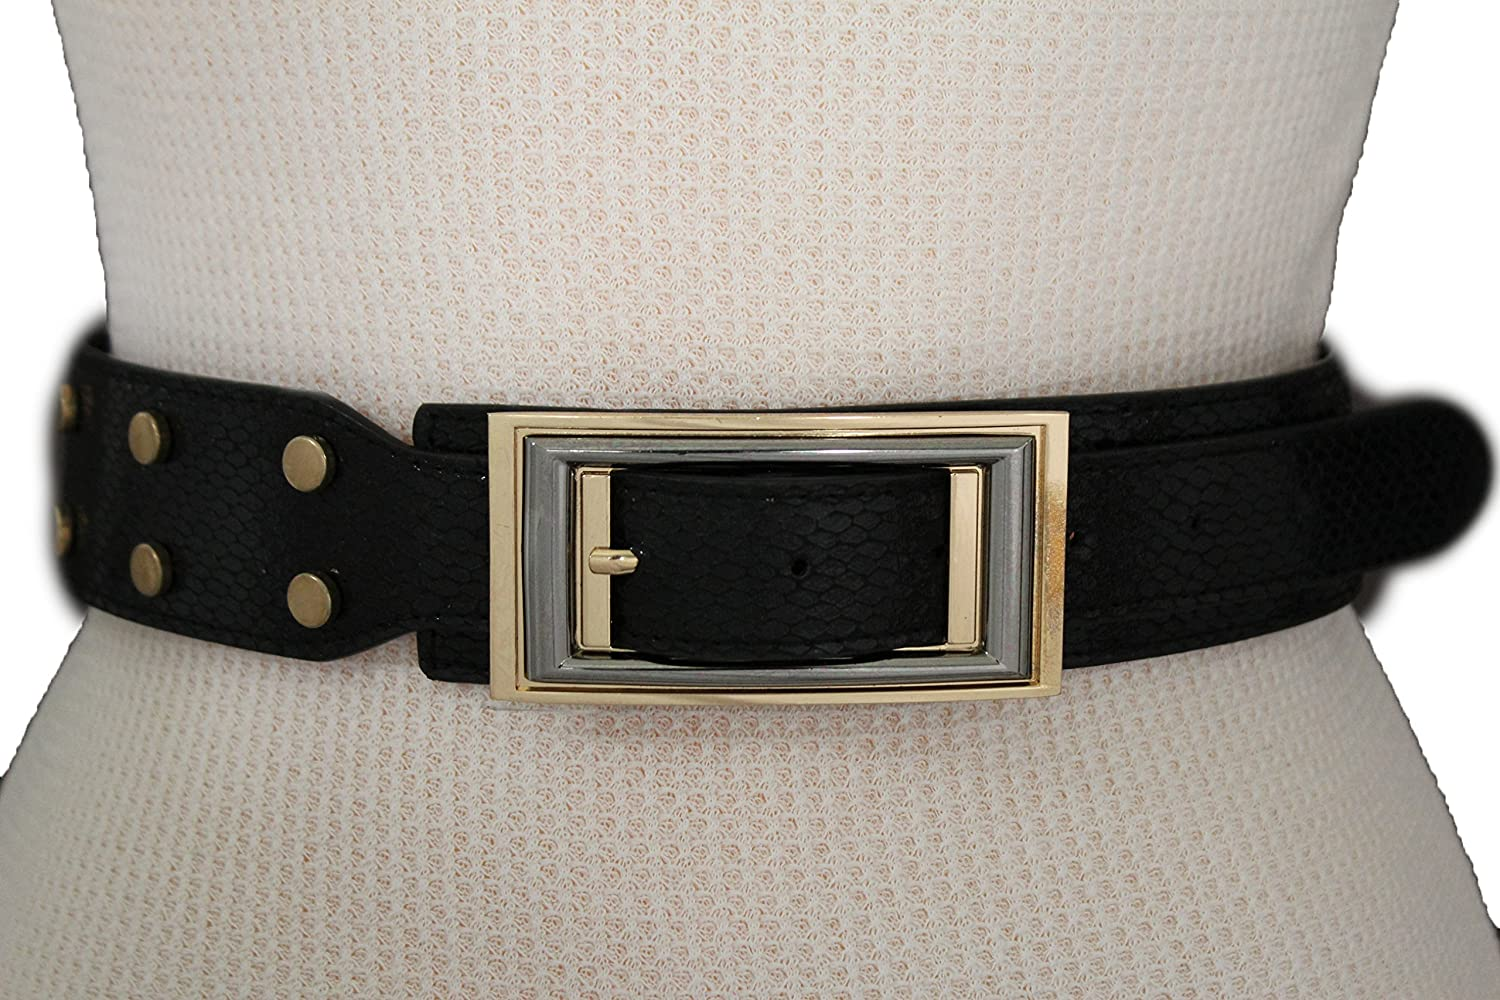 New Women Fashion Snake Skin Stamp Belt Black Stretch Waistband Gold Buckle S M